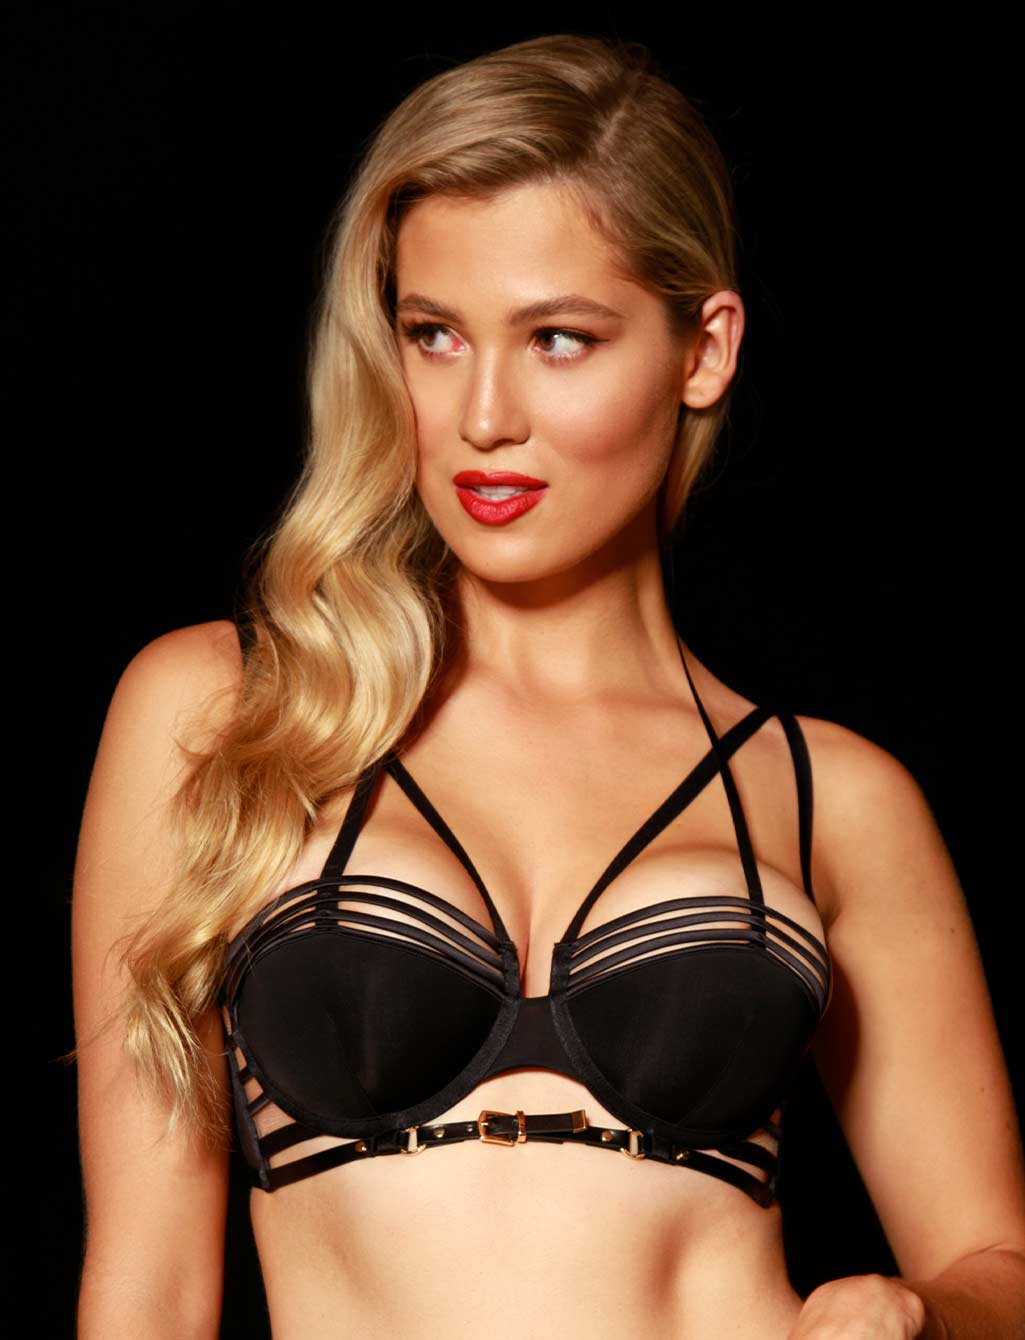 Jagger Black Strap Push Up Bra | Shop  Lingerie Honey Birdette